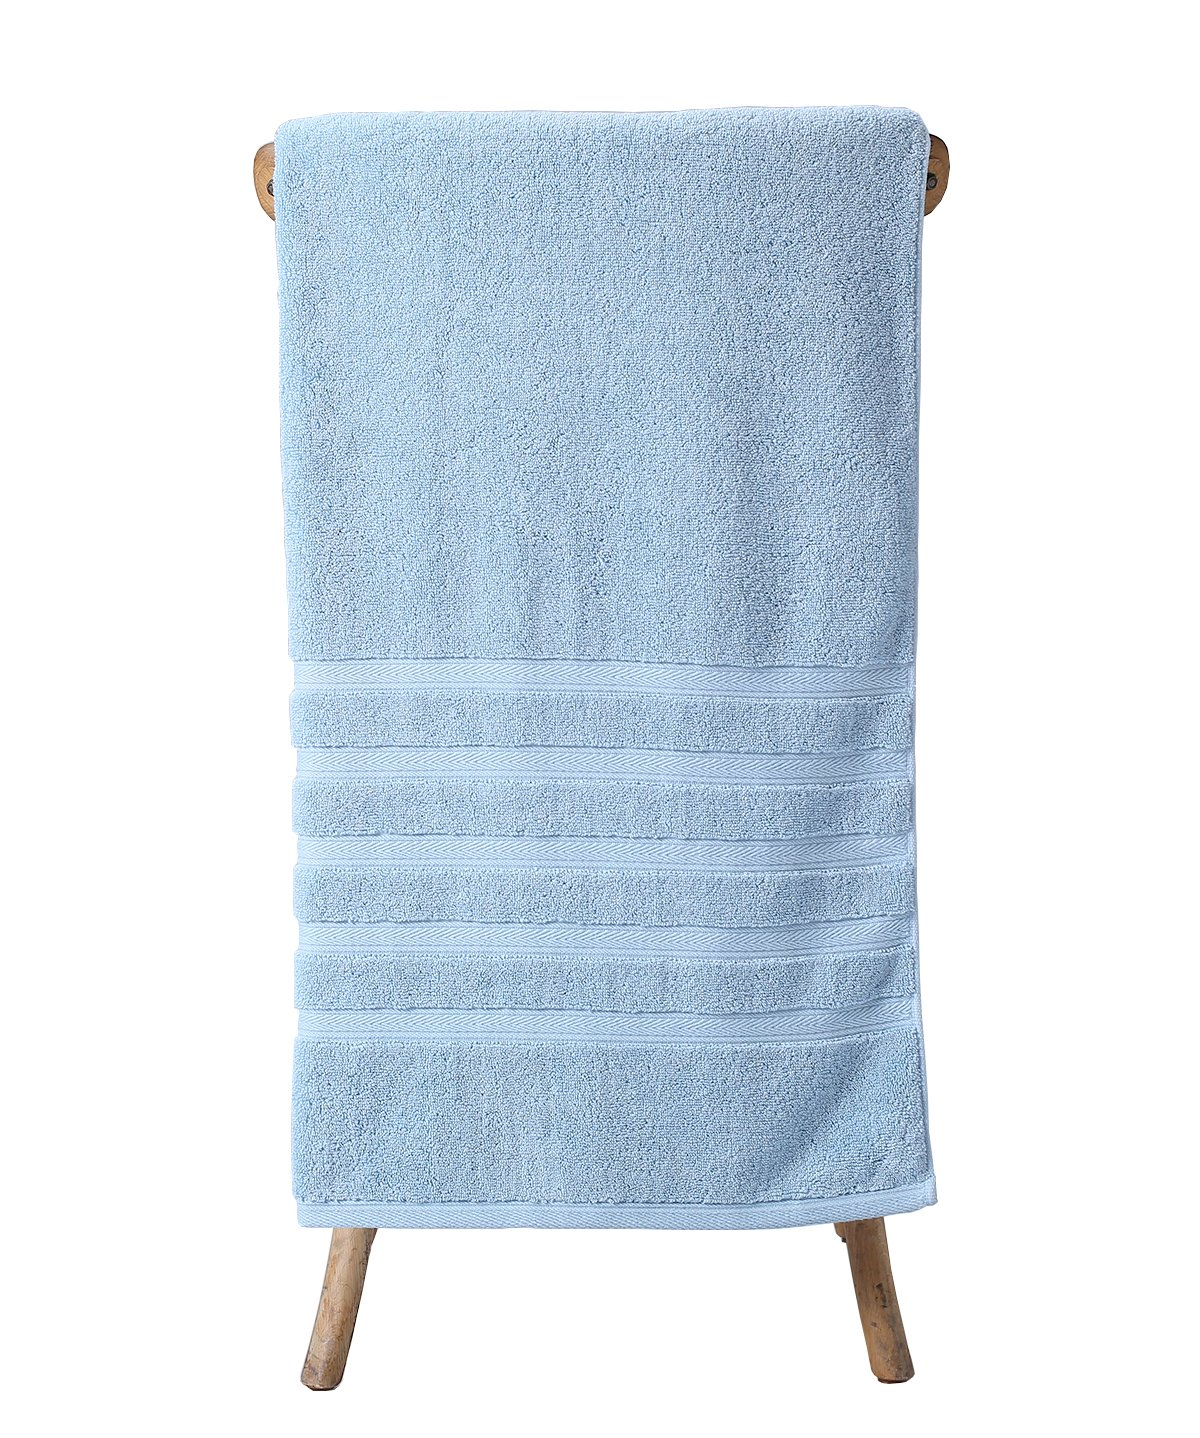 Metrekey Large Bath Towel Luxury Hotel Spa Collection Absorbent Bathroom Towels 35x70 inches Soft Clearance Organic 100% Cotton Thick Ultra Oversized Blue